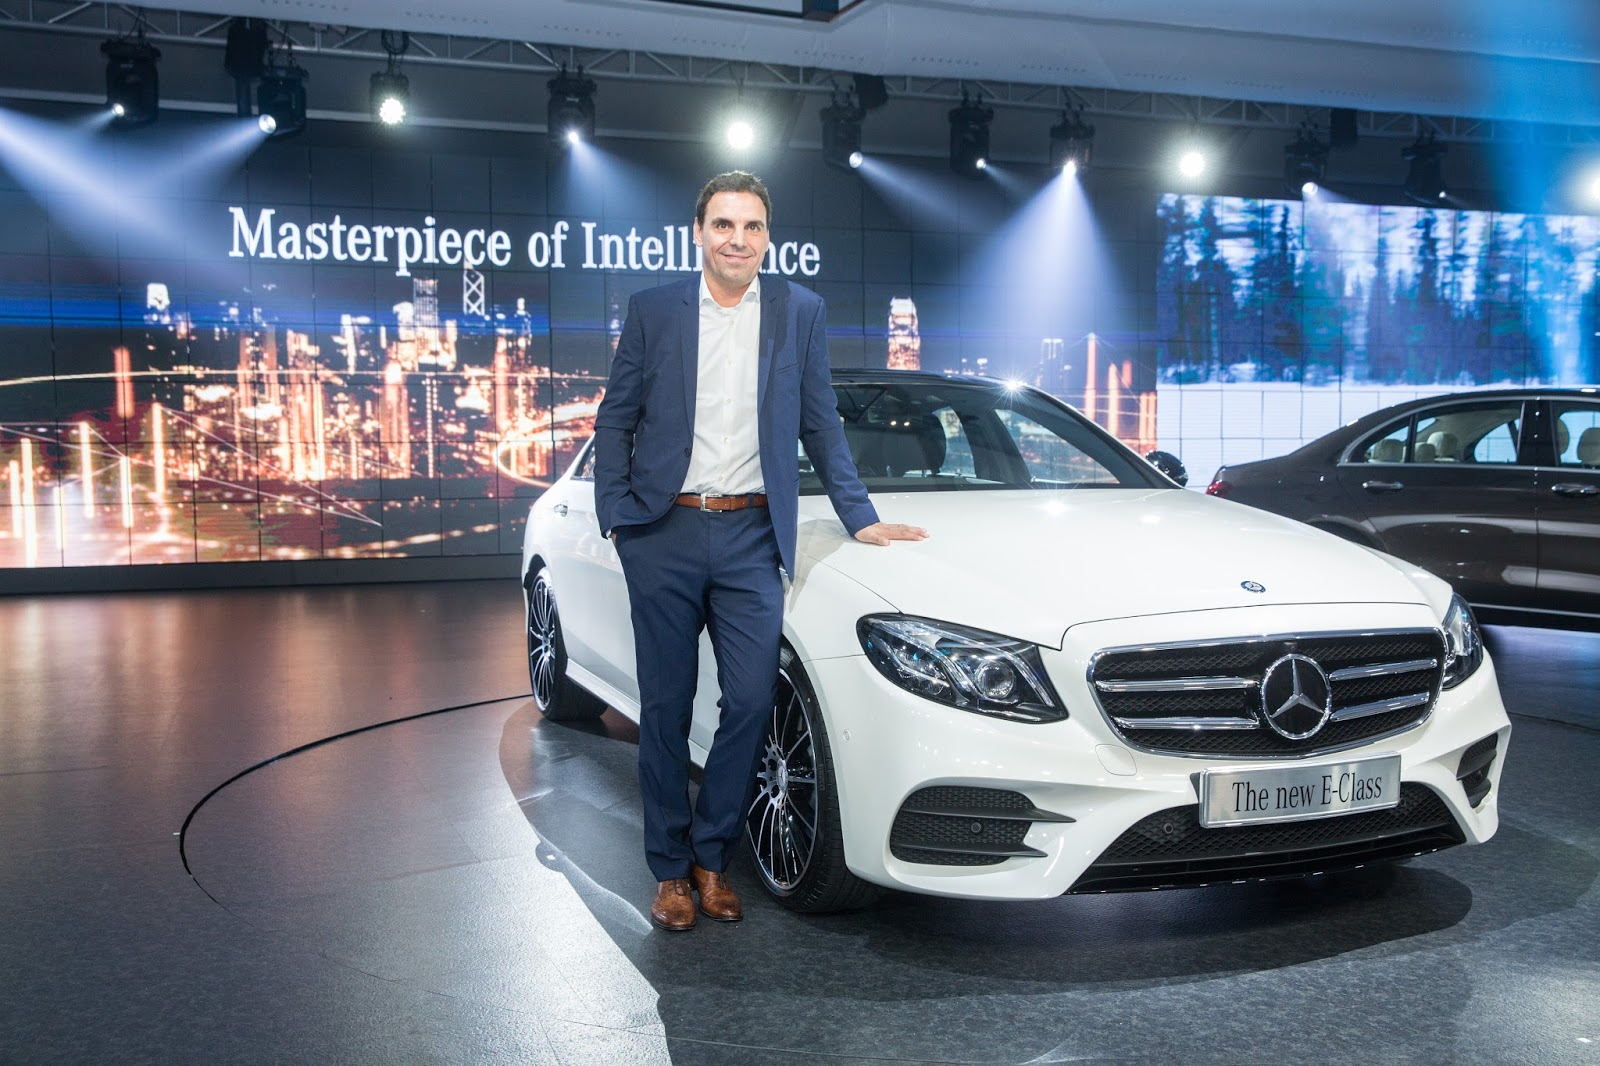 Mercedes benz launches the masterpiece of intelligence e for Mercedes benz greenway staff